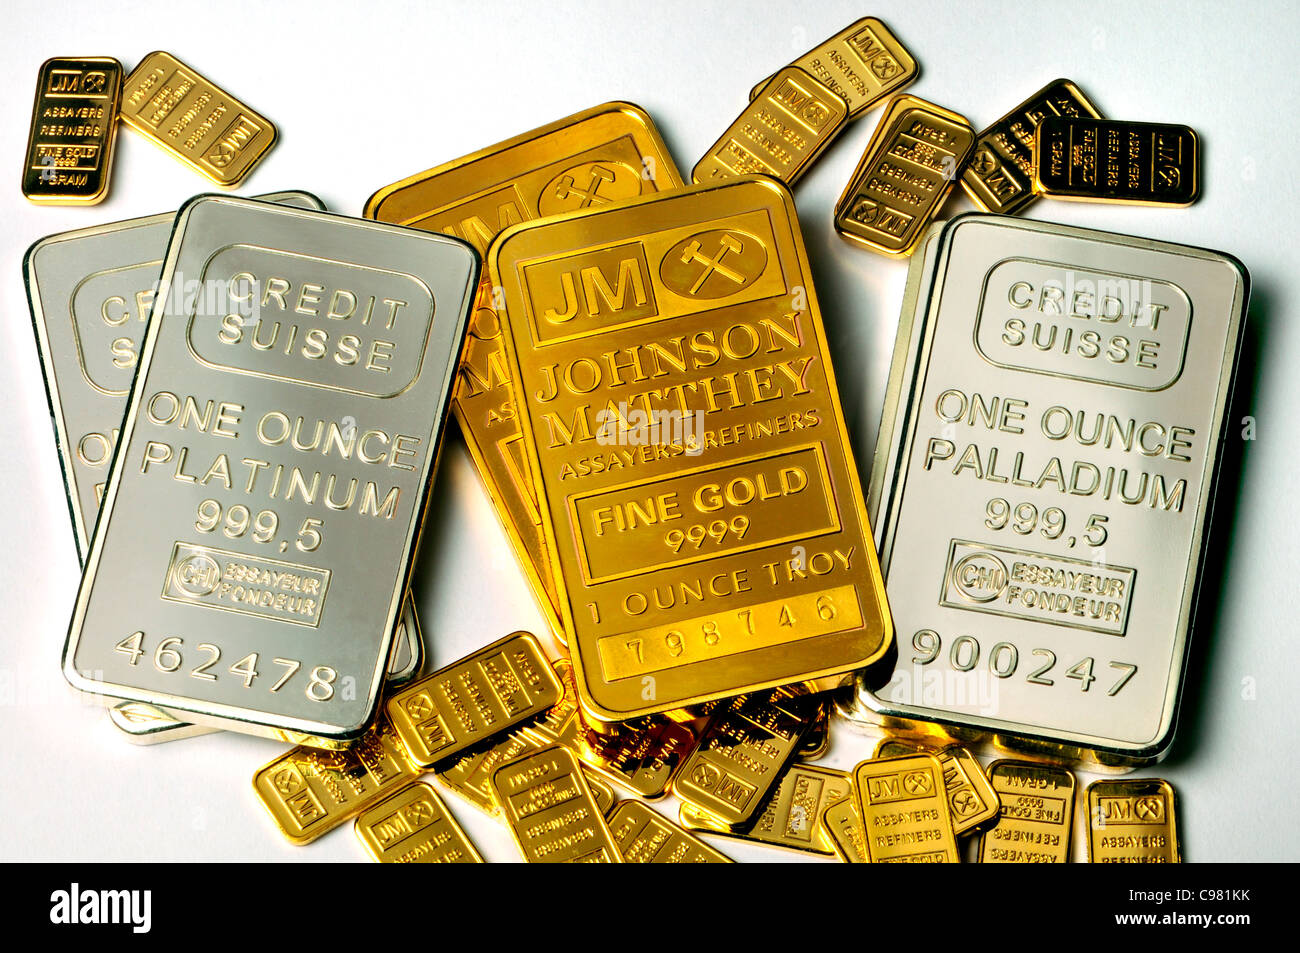 Gold, Platinum and Palladium bullion in 1oz and 1g bars / ingots (plated replicas) - Stock Image